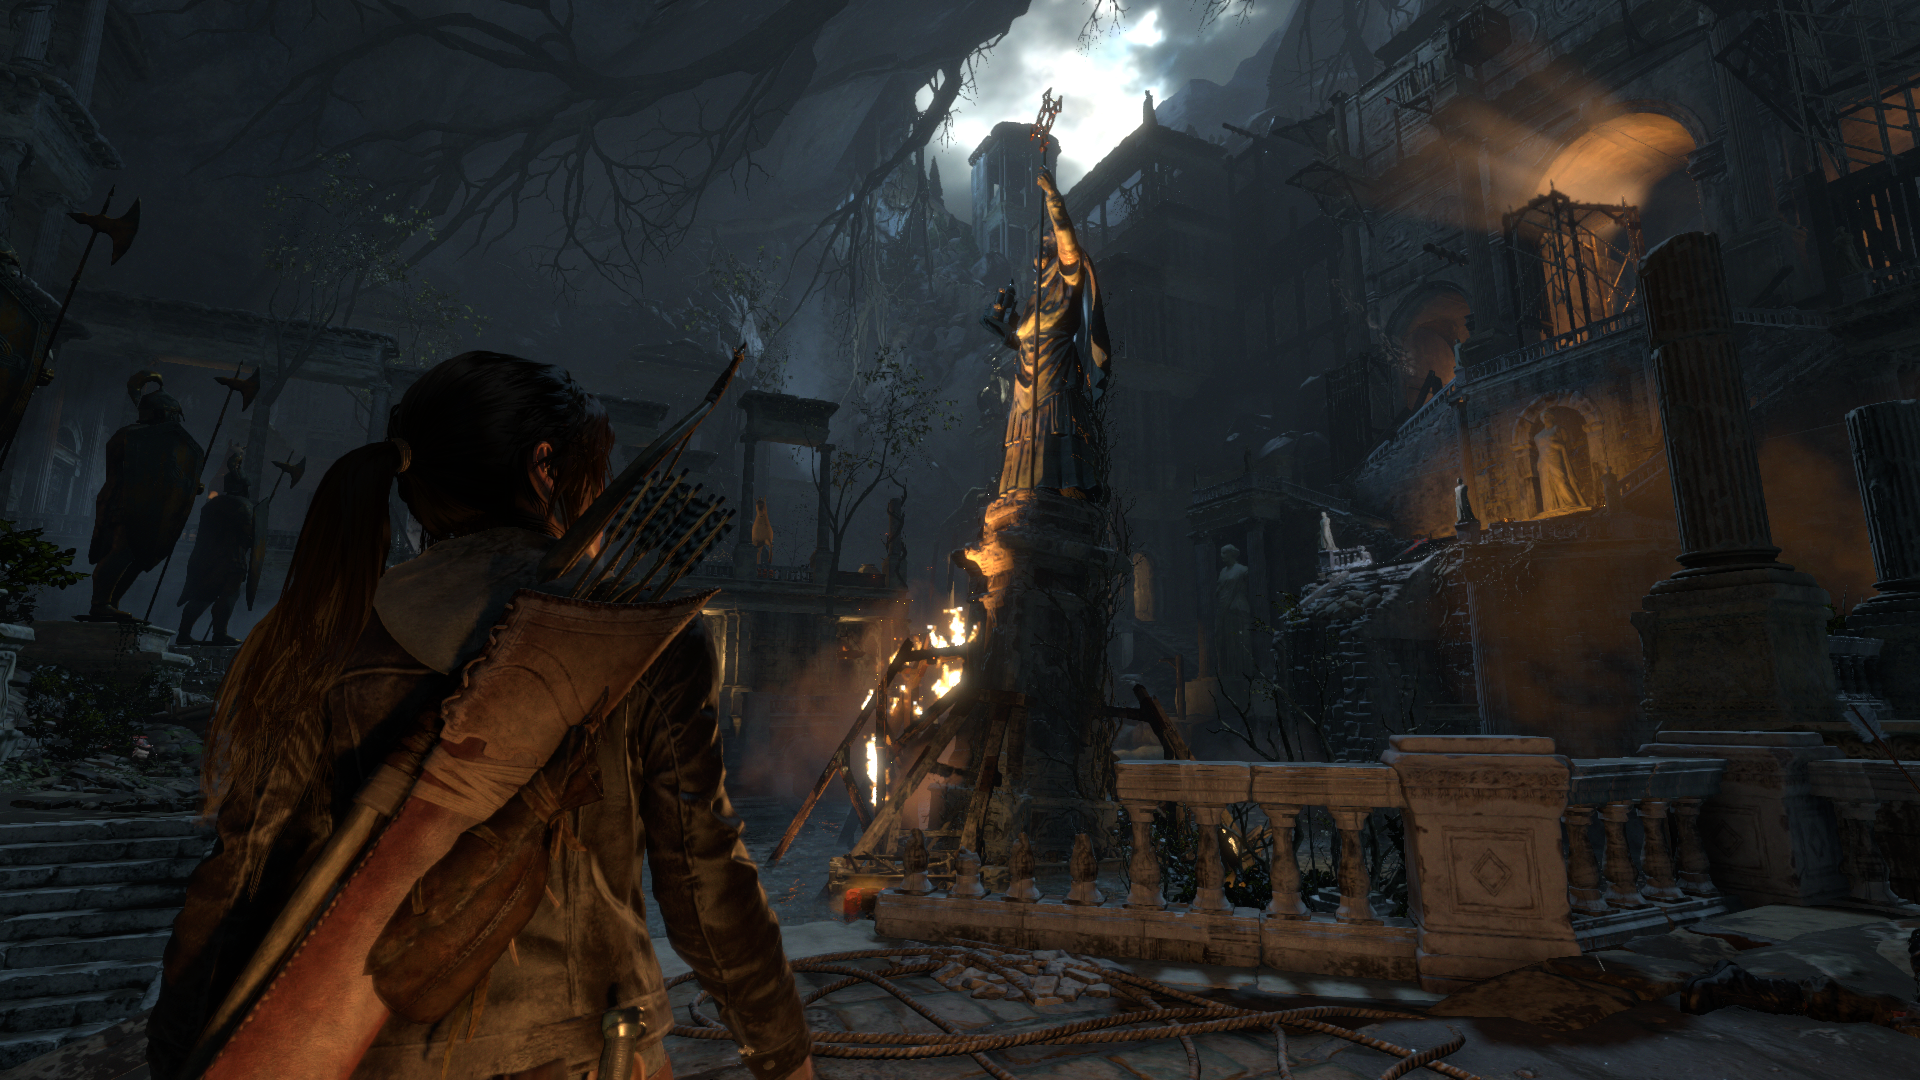 Lara Croft Is The Worst Thing About Rise of the Tomb Raider